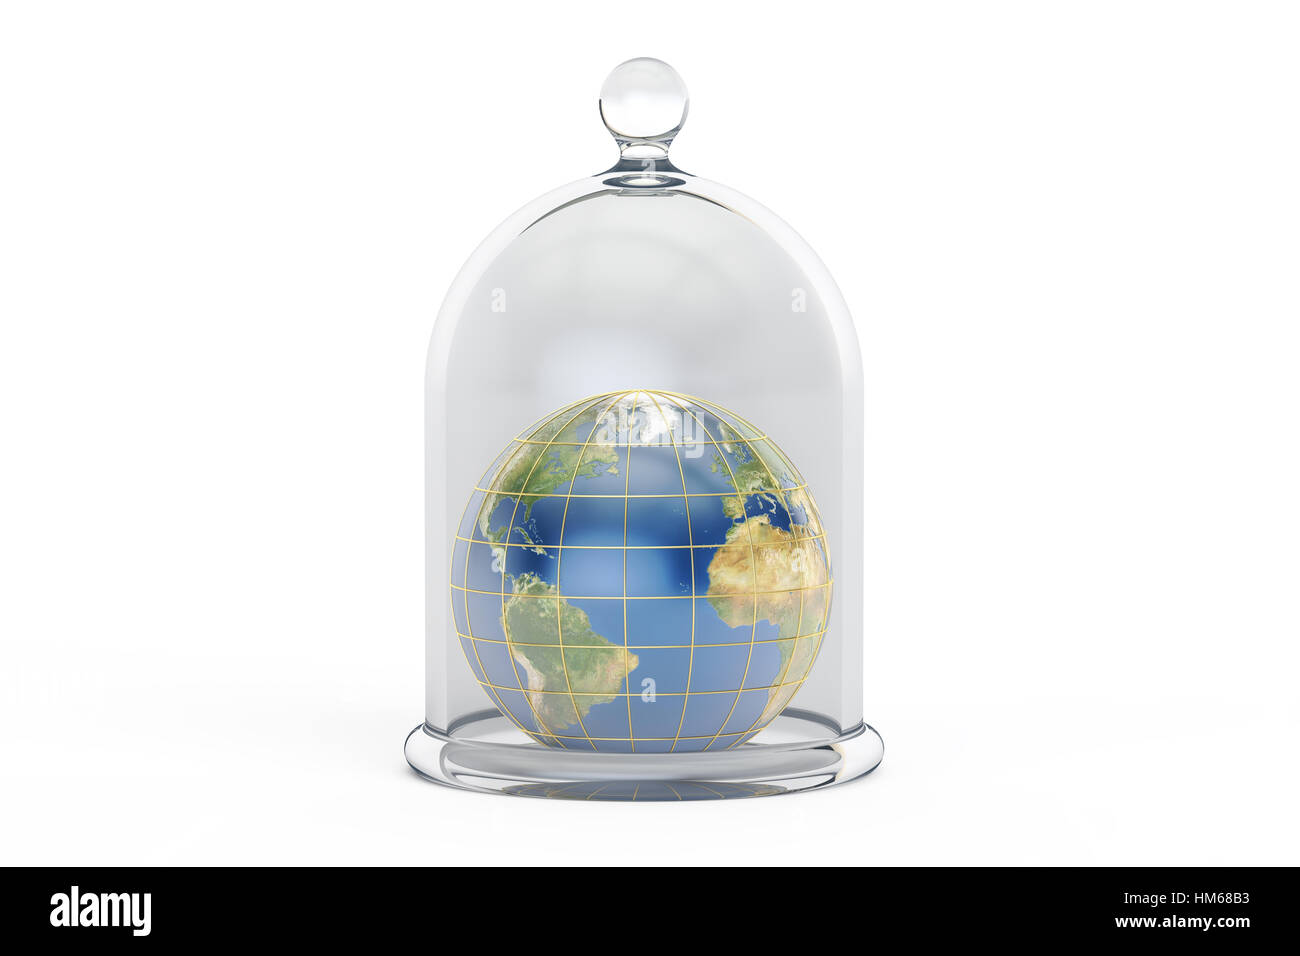 Earth covered by glass bell. Conservation and protection concept, 3D rendering isolated on white background - Stock Image